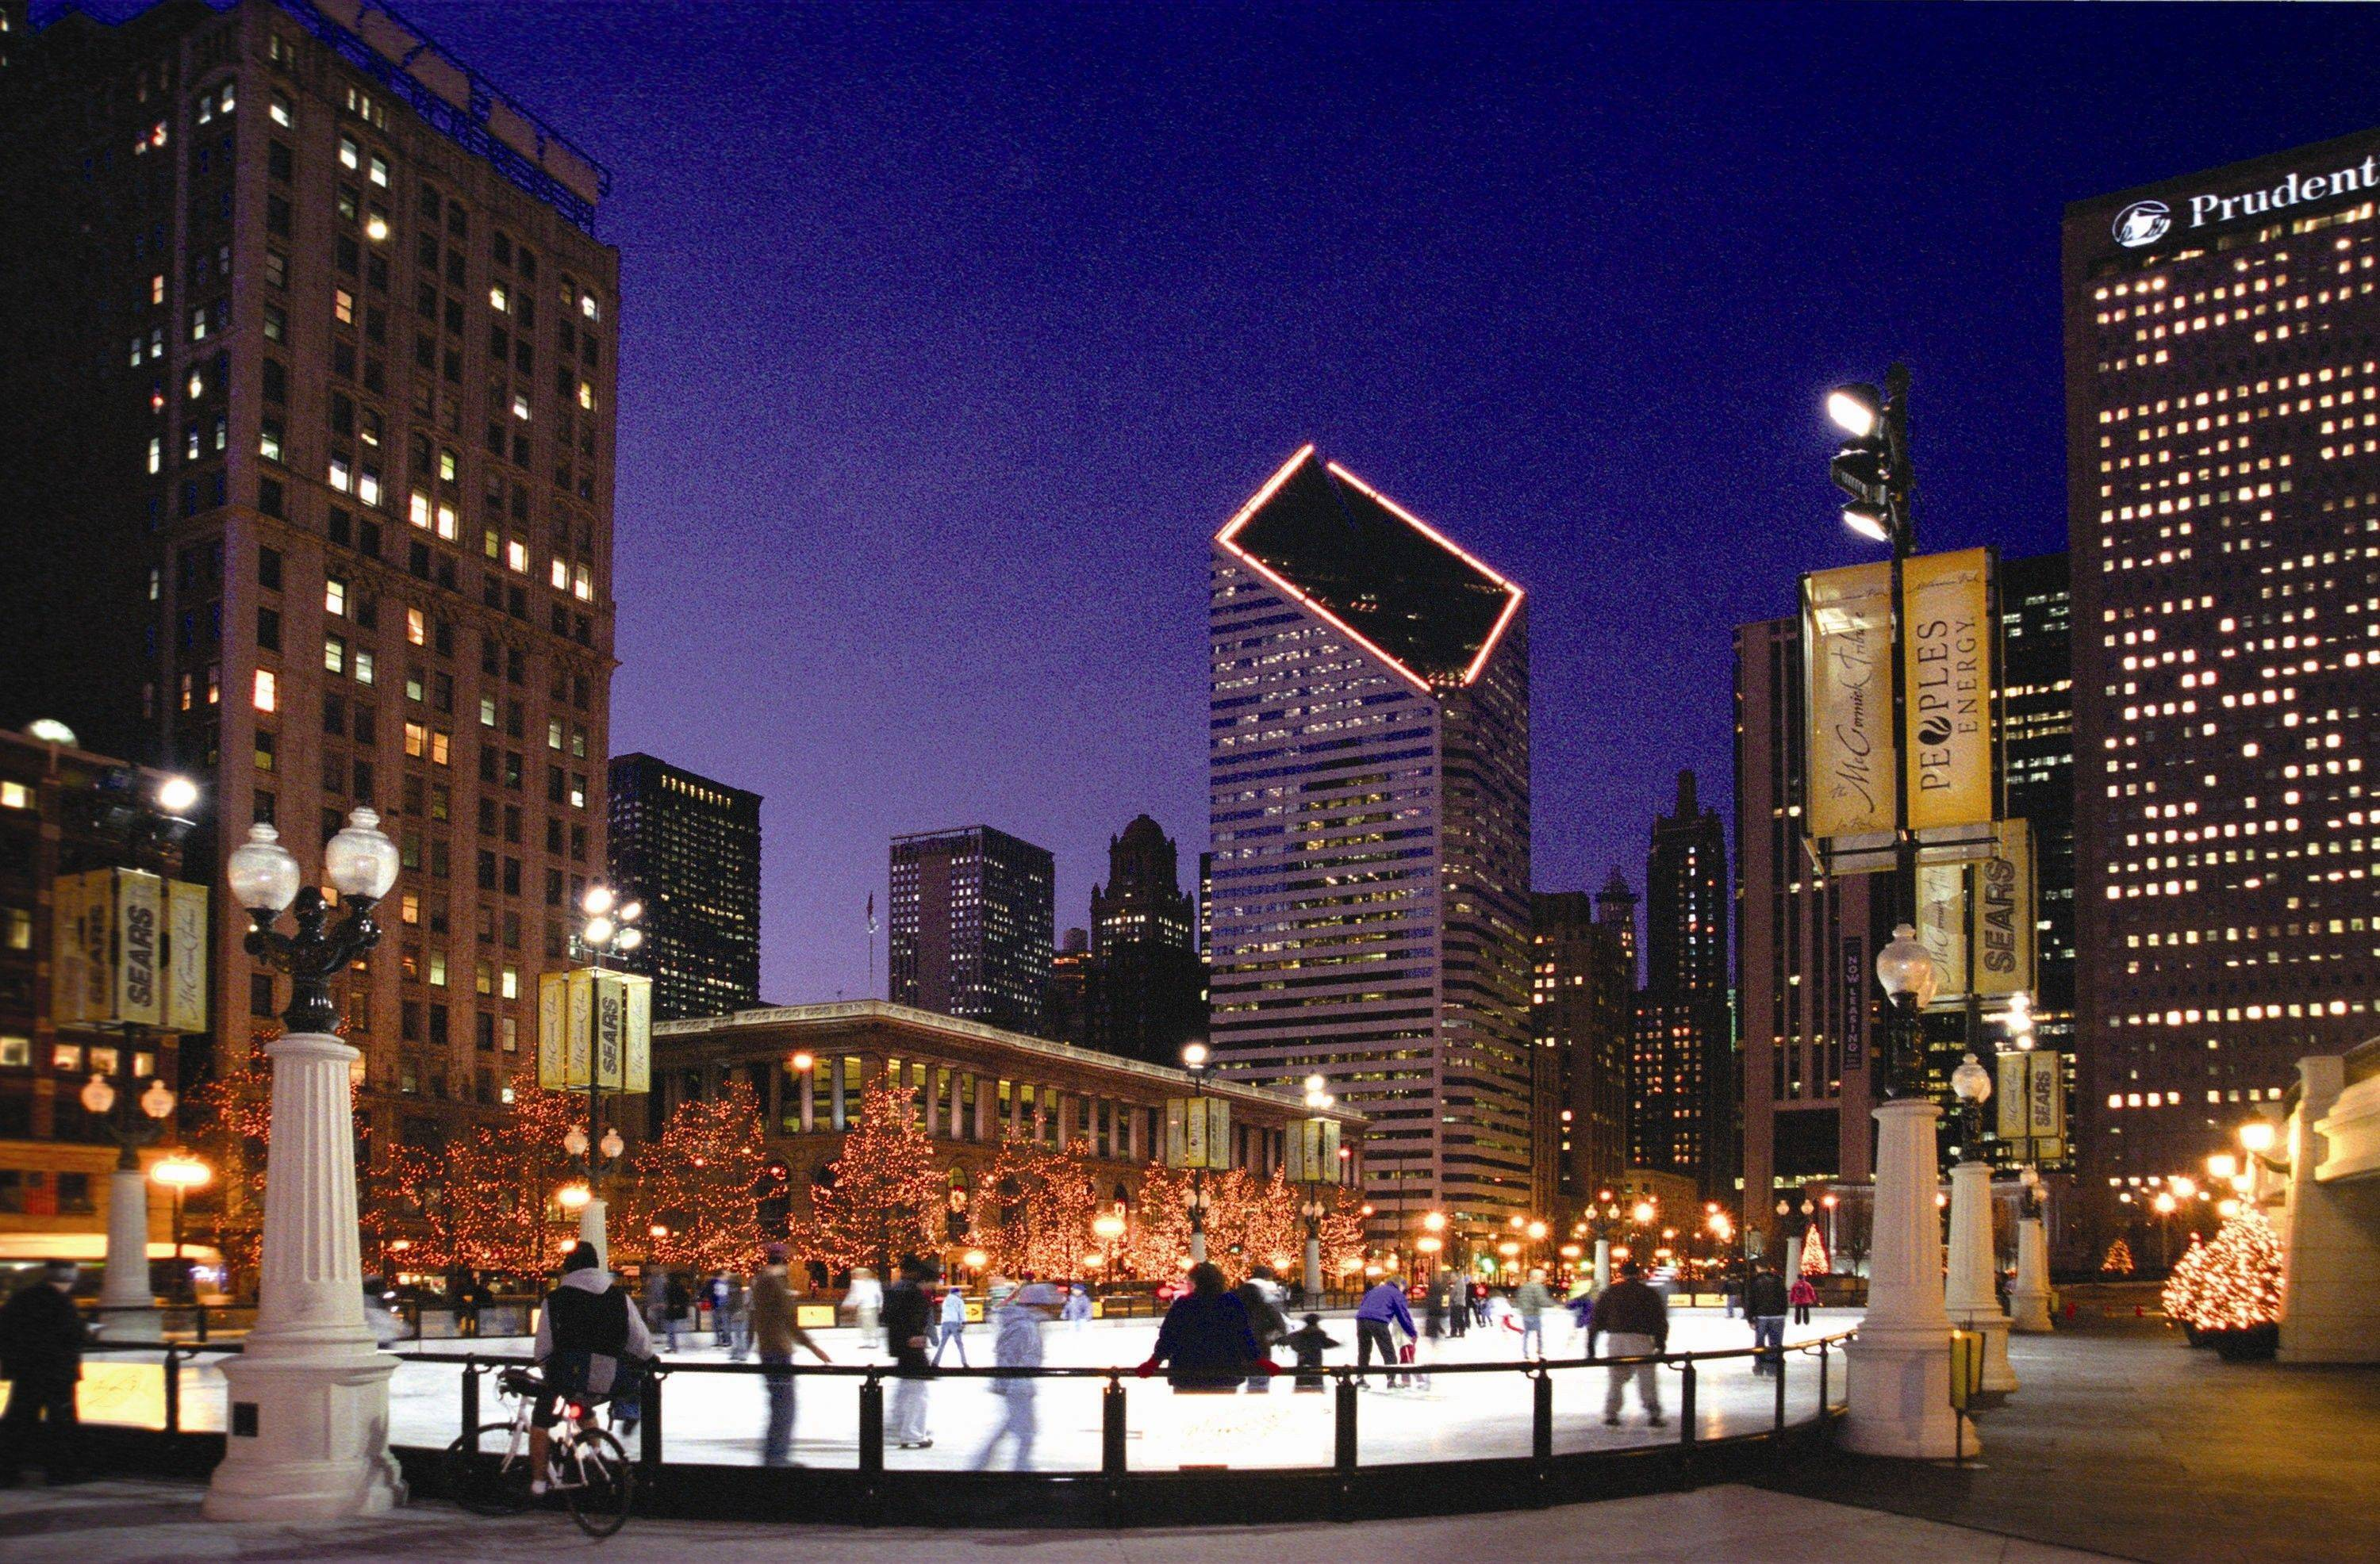 The Chicago skyline makes a great backdrop, day or night, for ice skating in Millennium Park.